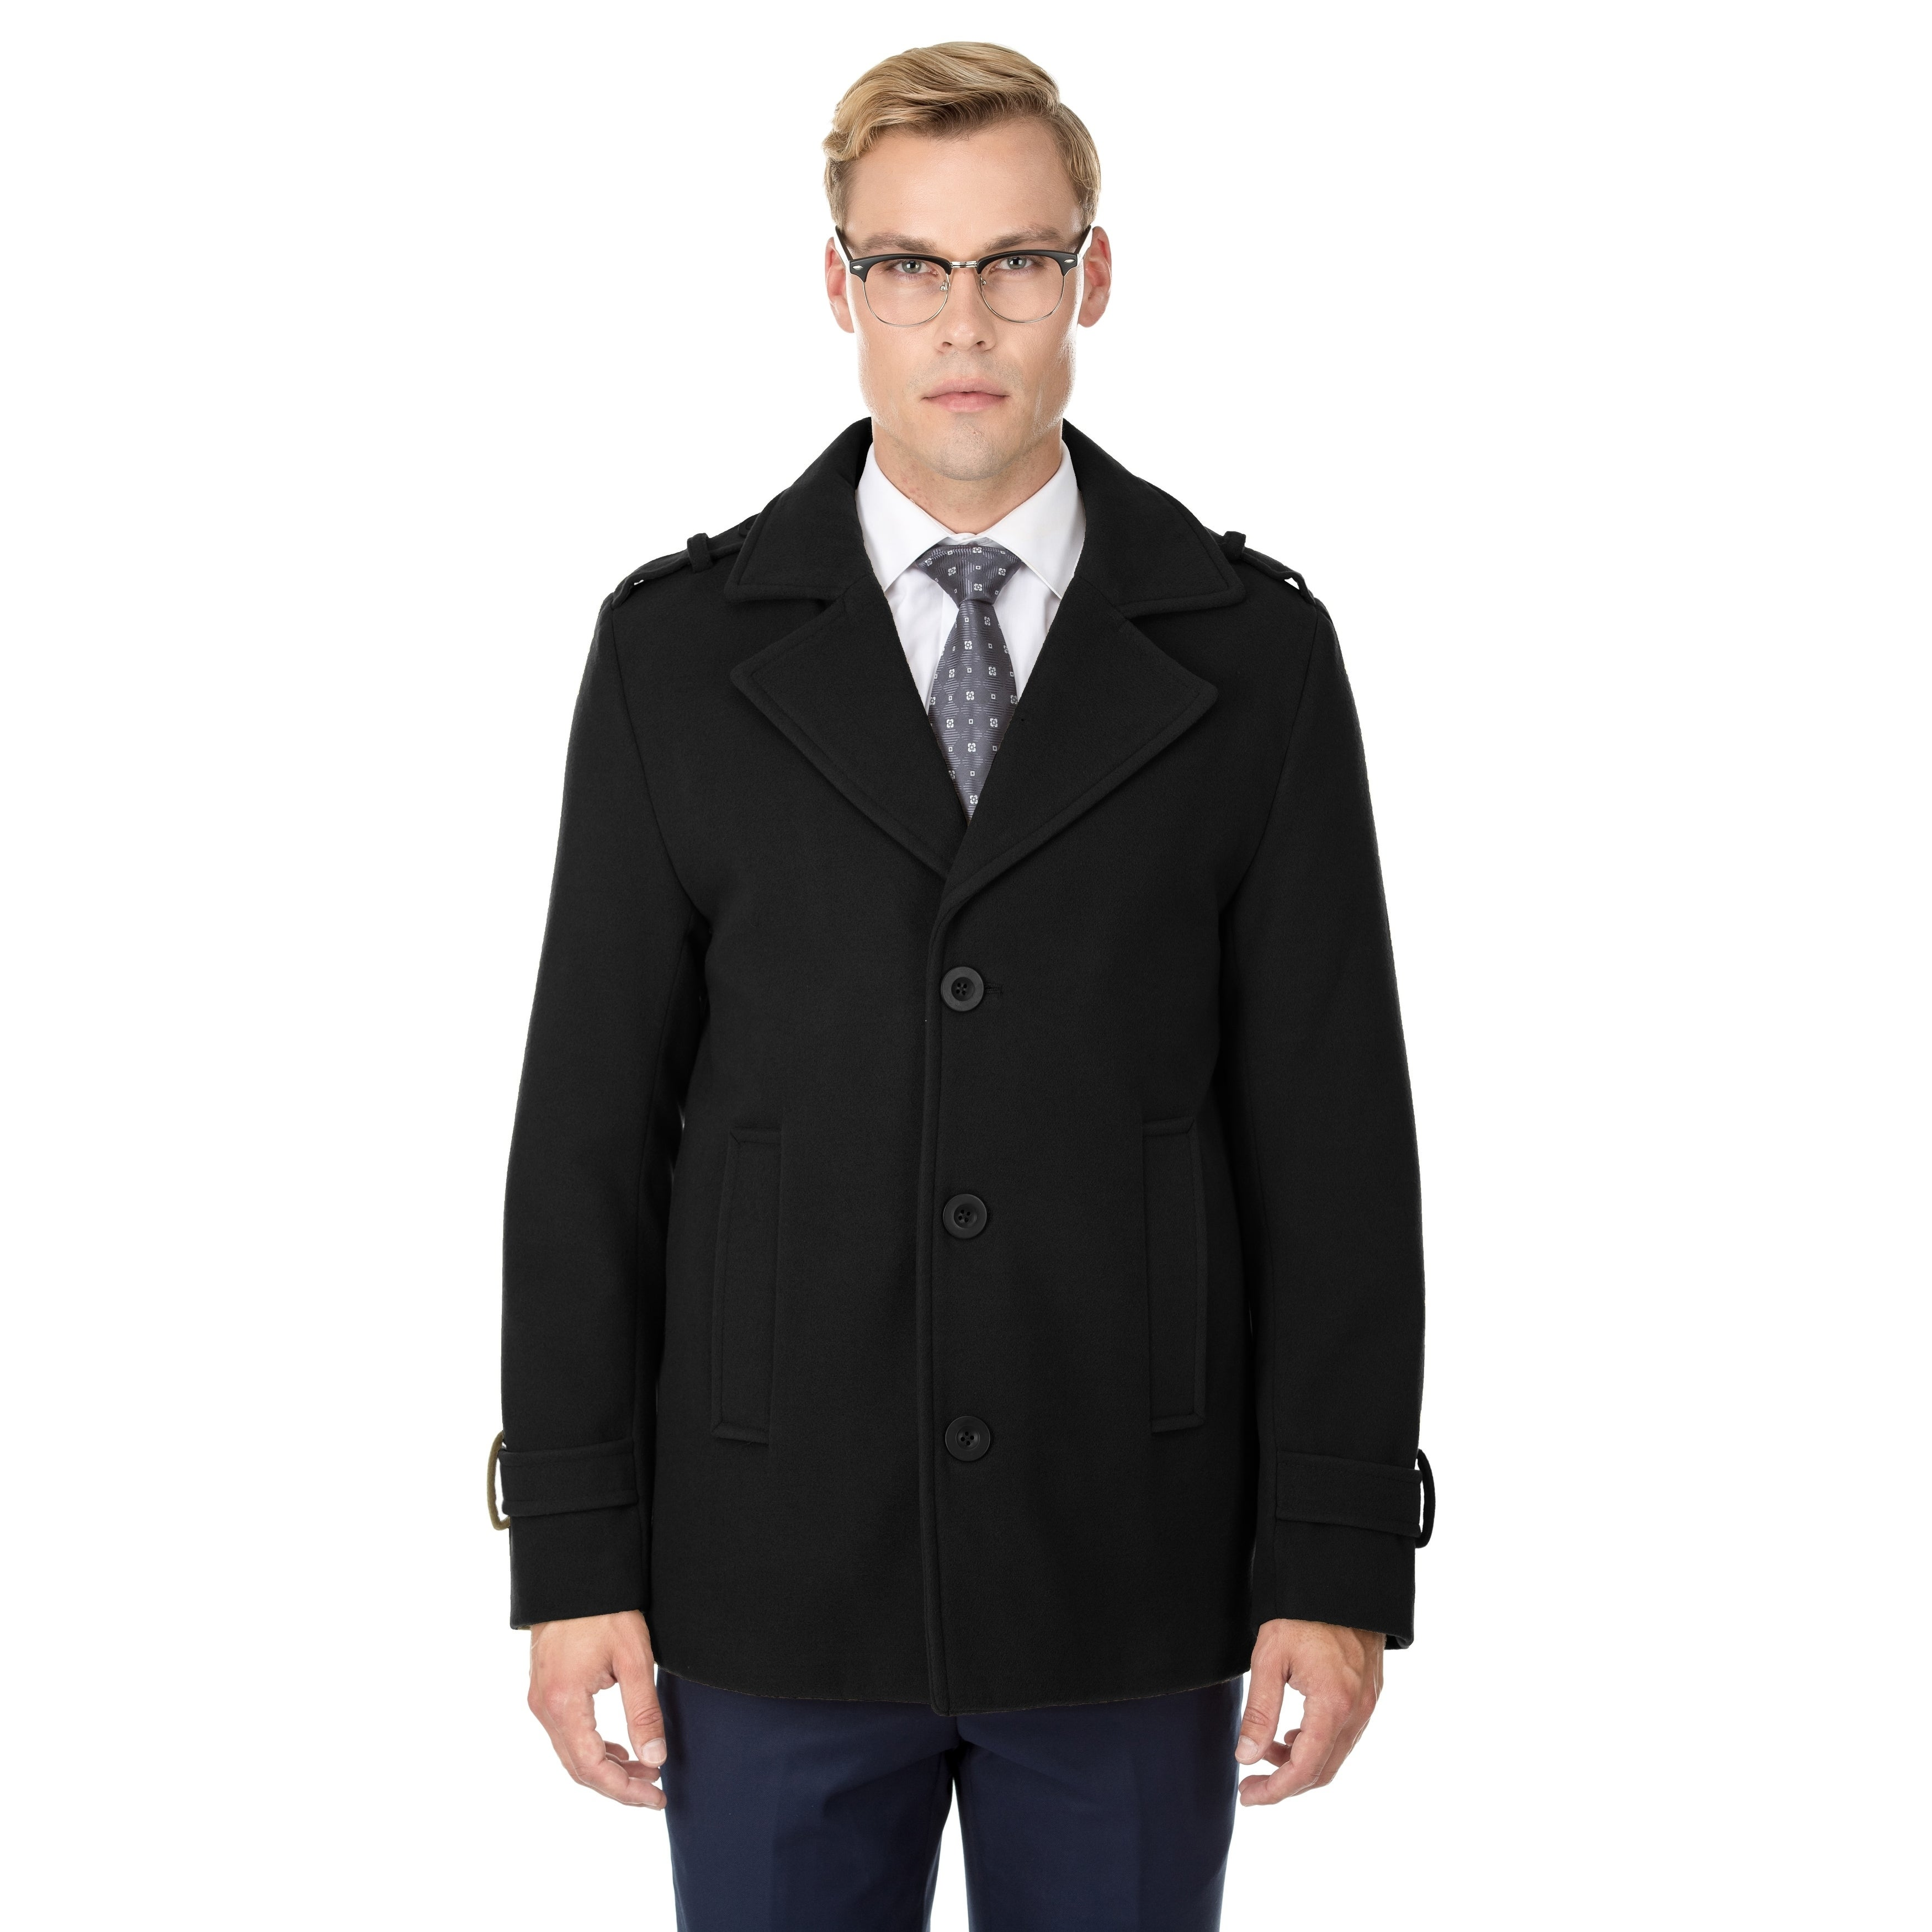 694ce1742881 Shop Braveman Men s Single Breasted Wool Blend Coats - On Sale - Free  Shipping Today - Overstock - 18062950